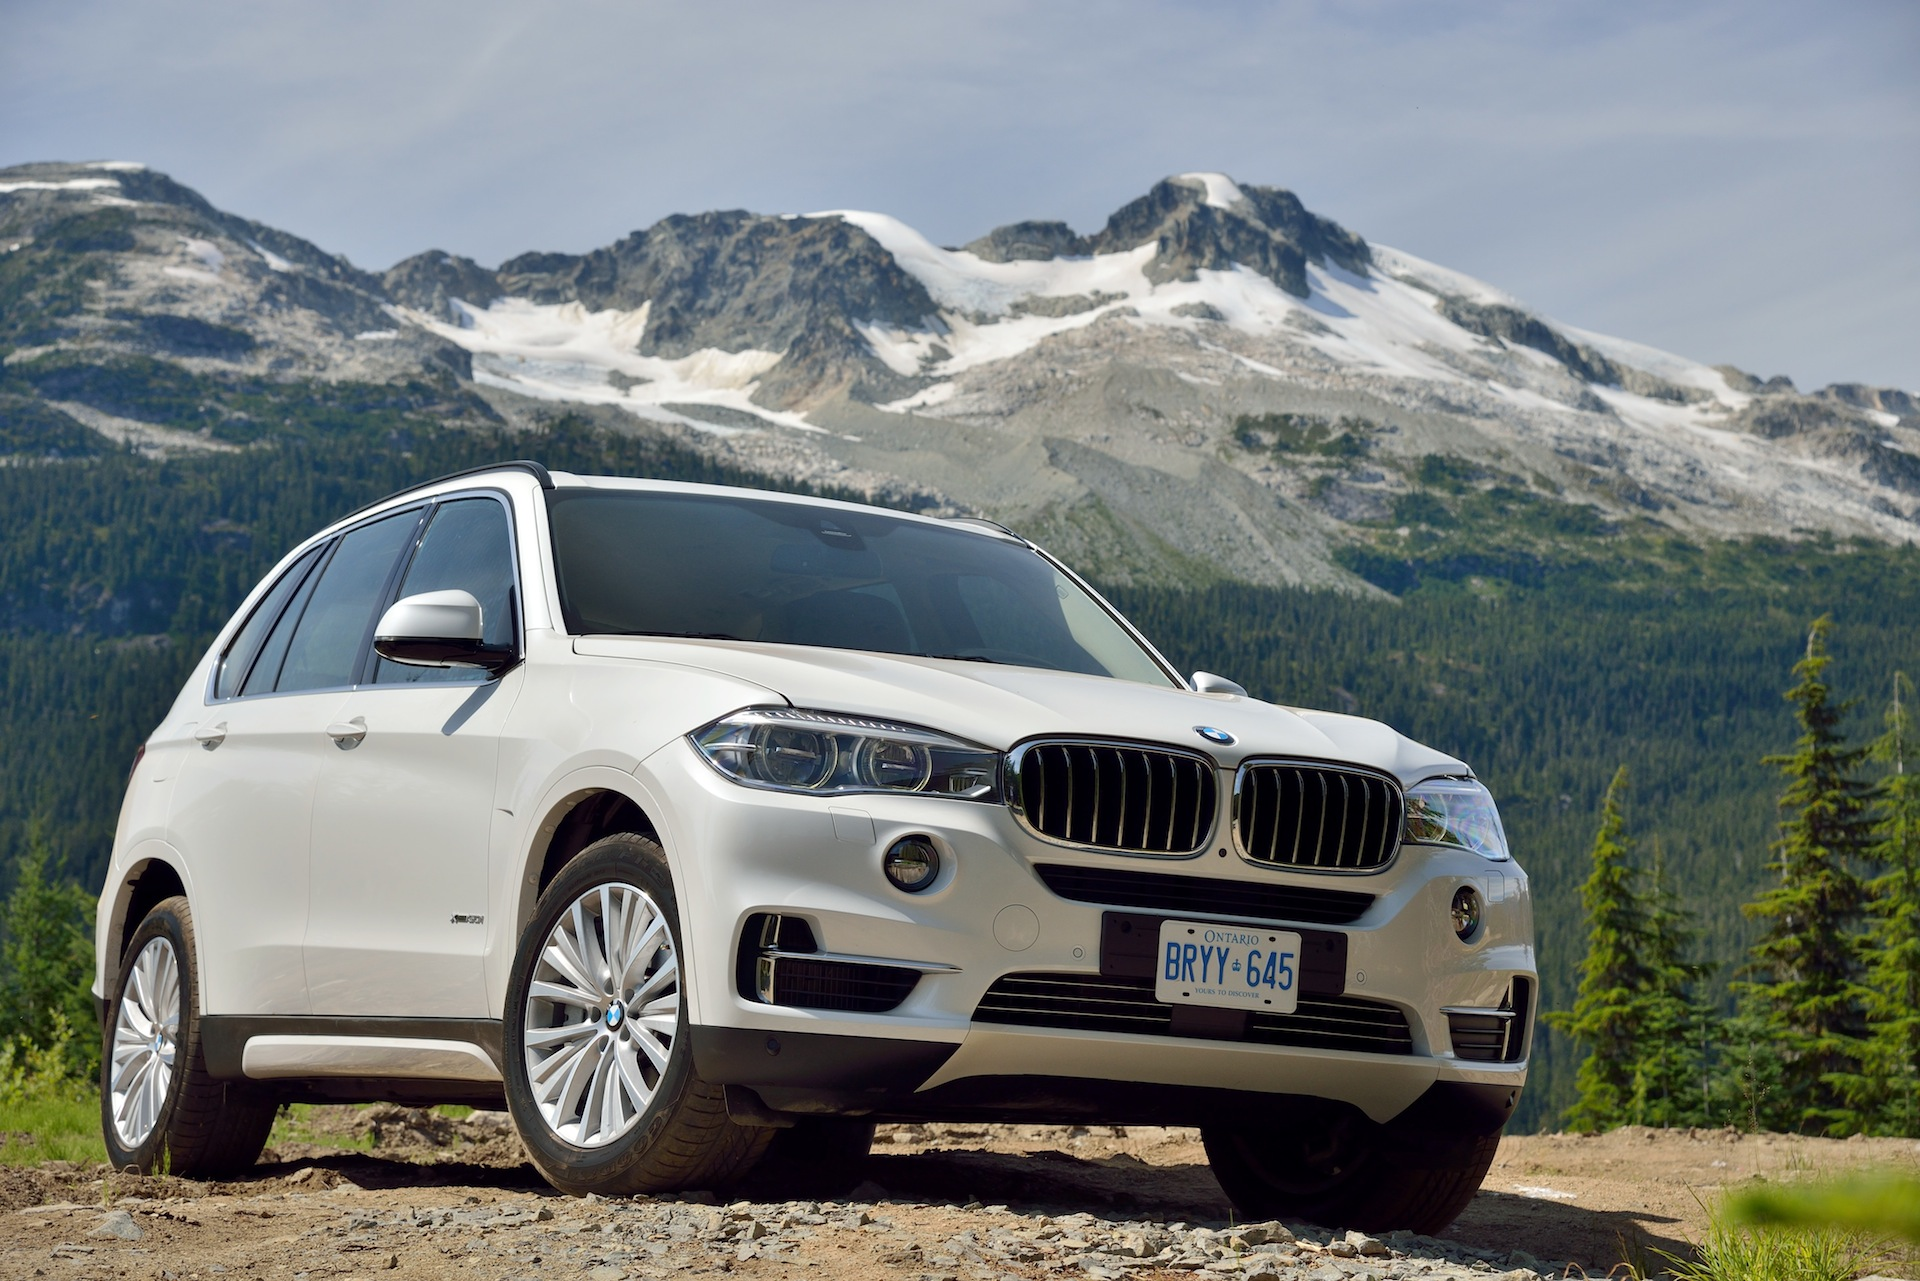 Bmw X7 Full Size Luxury Suv Back In The Spotlight